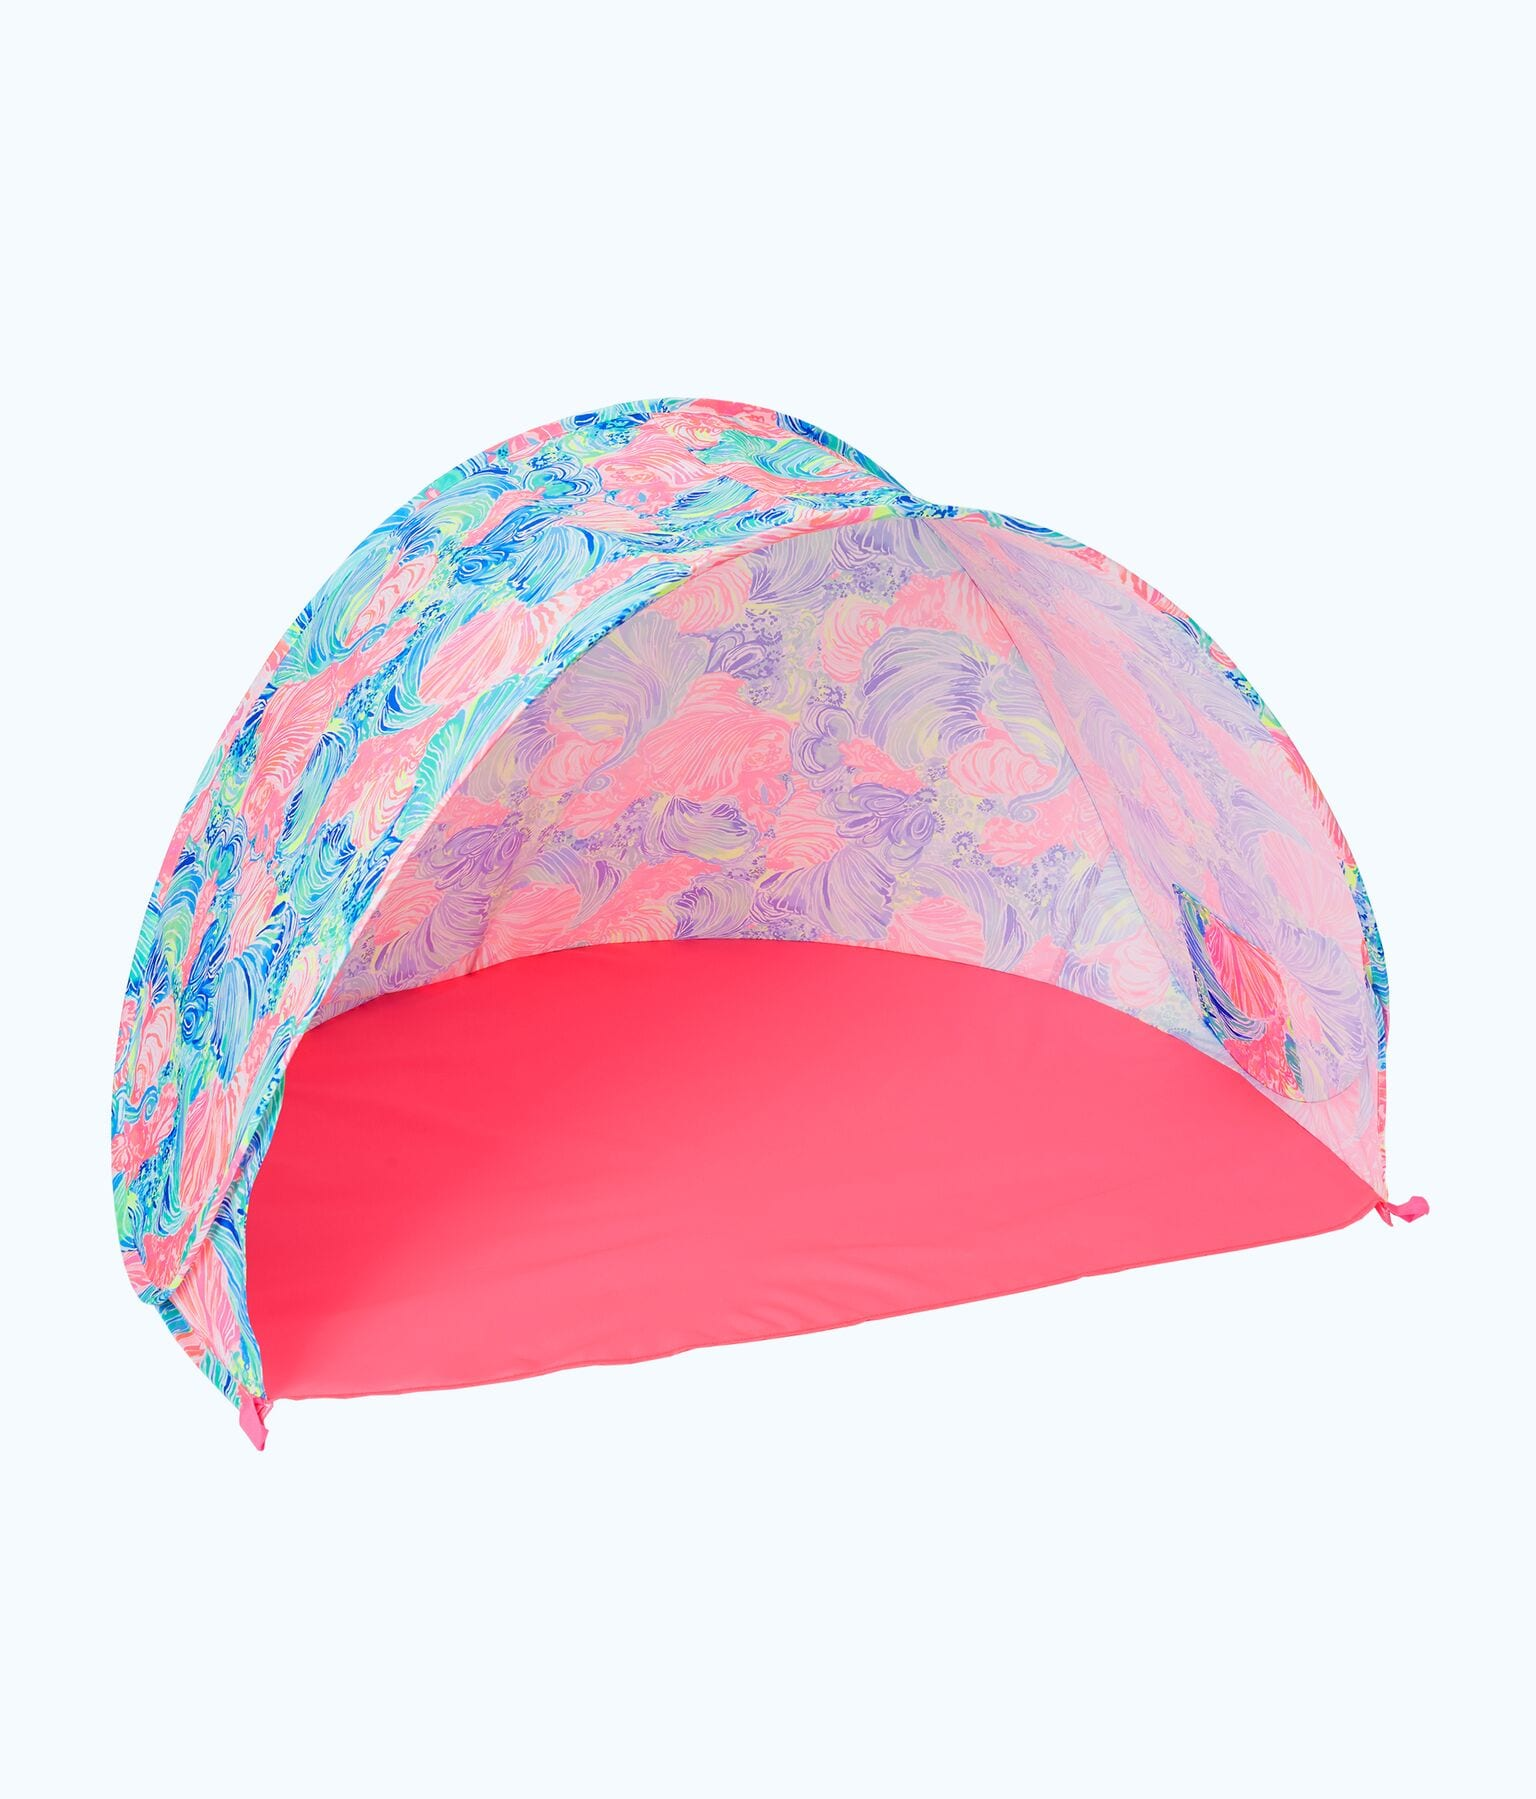 lilly pulitzer sun canopy